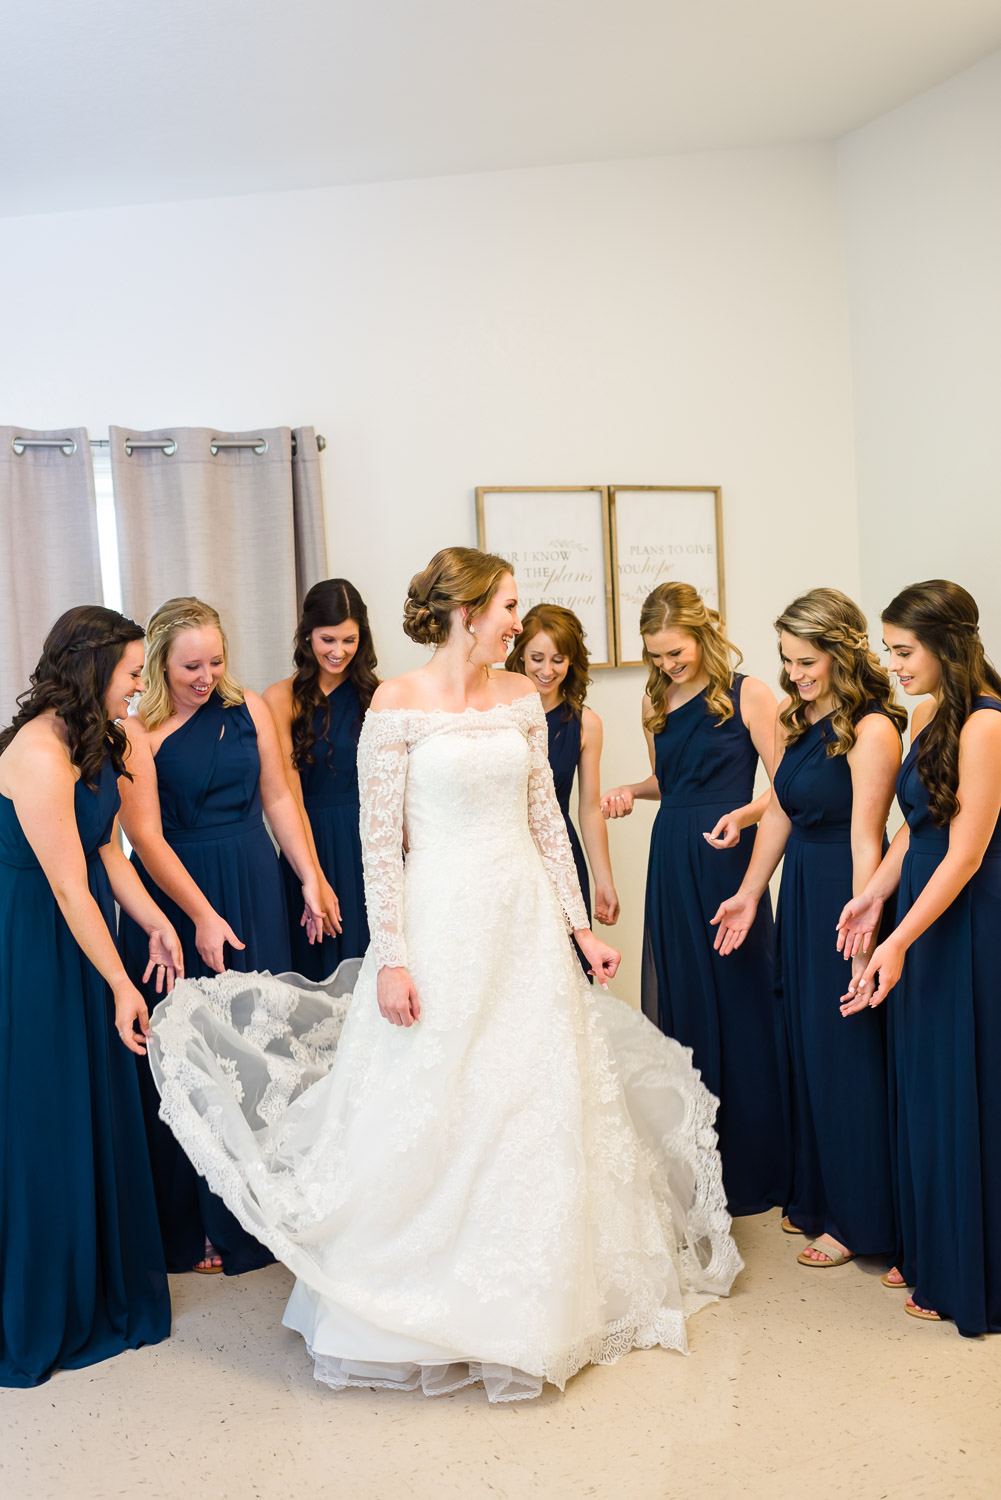 bride and girls in navy one strap long bridesmaids dresses adjusting bride's dress.